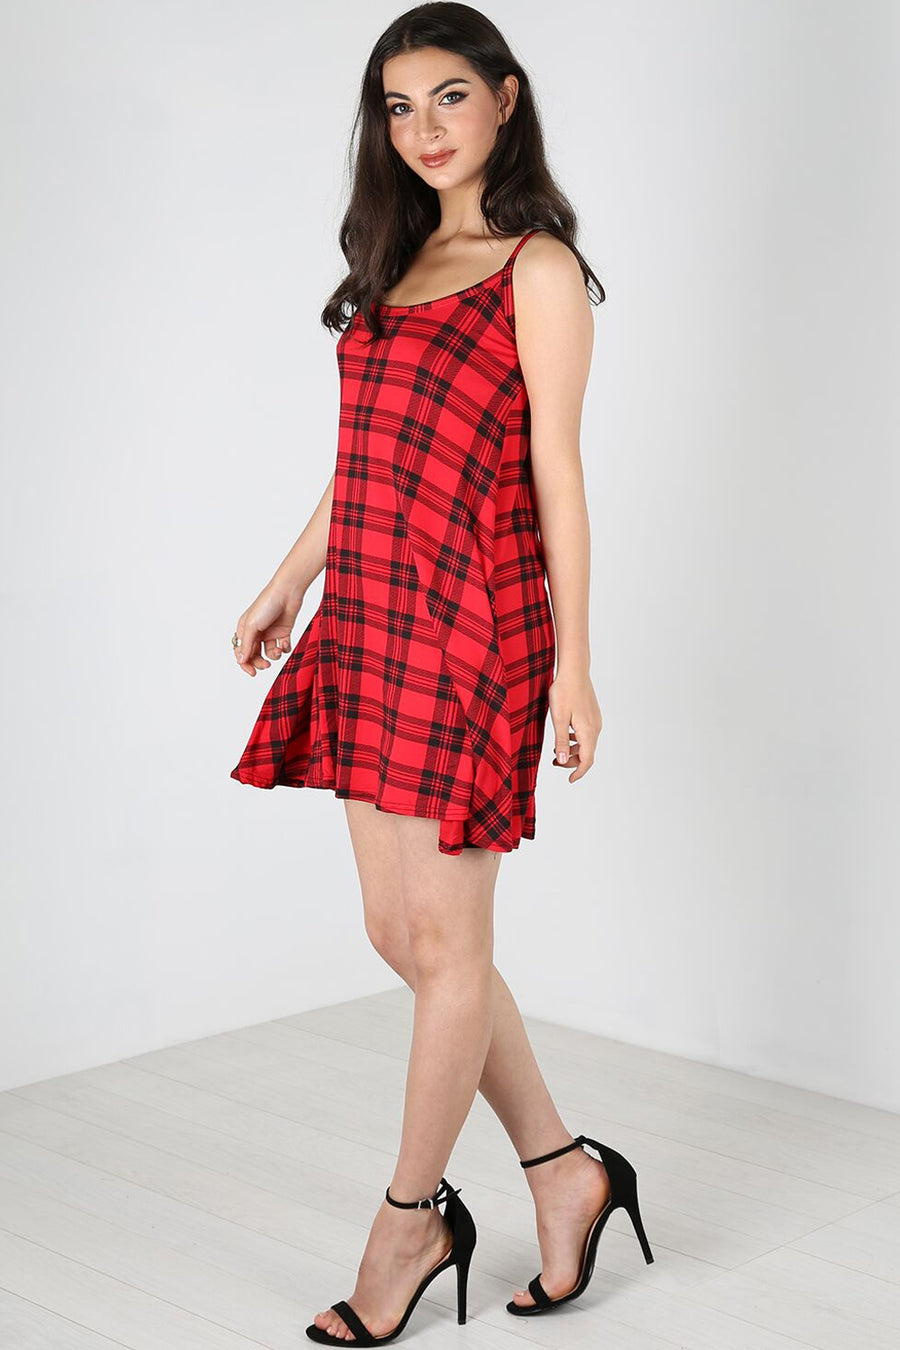 Strappy Red Tartan Mini Swing Dress